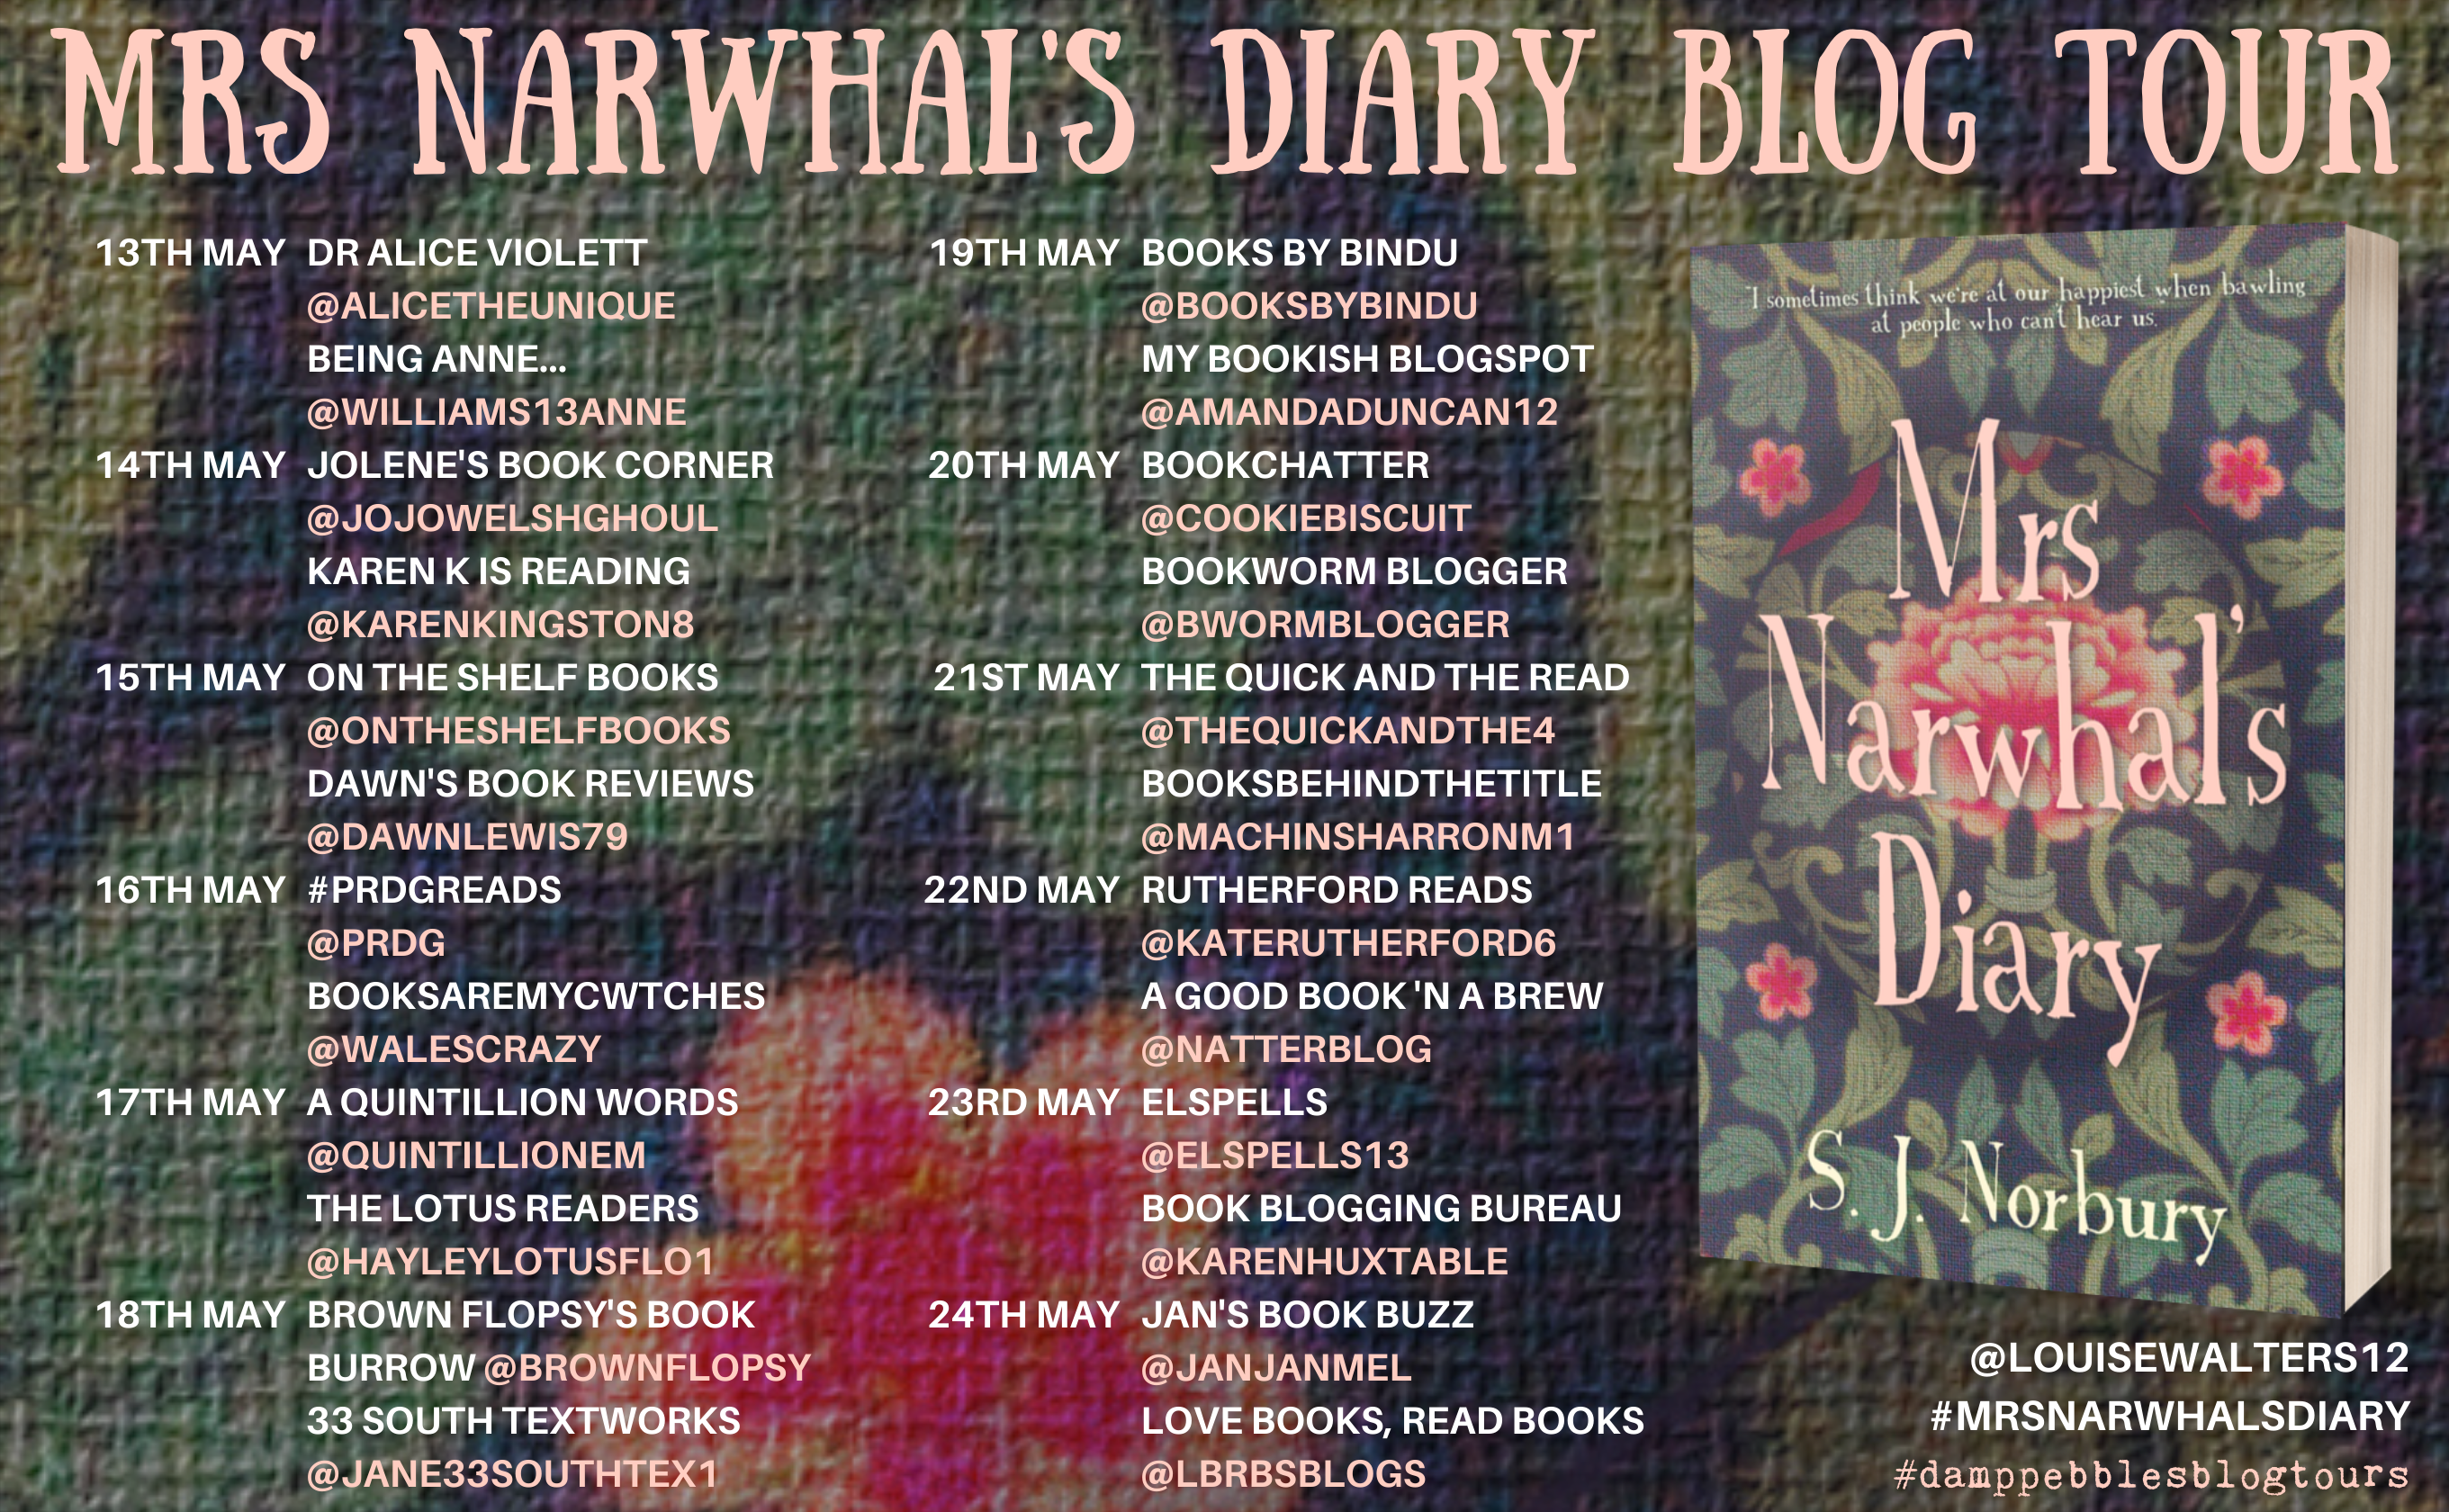 Blog Tour for Mrs Narwhal's Diary